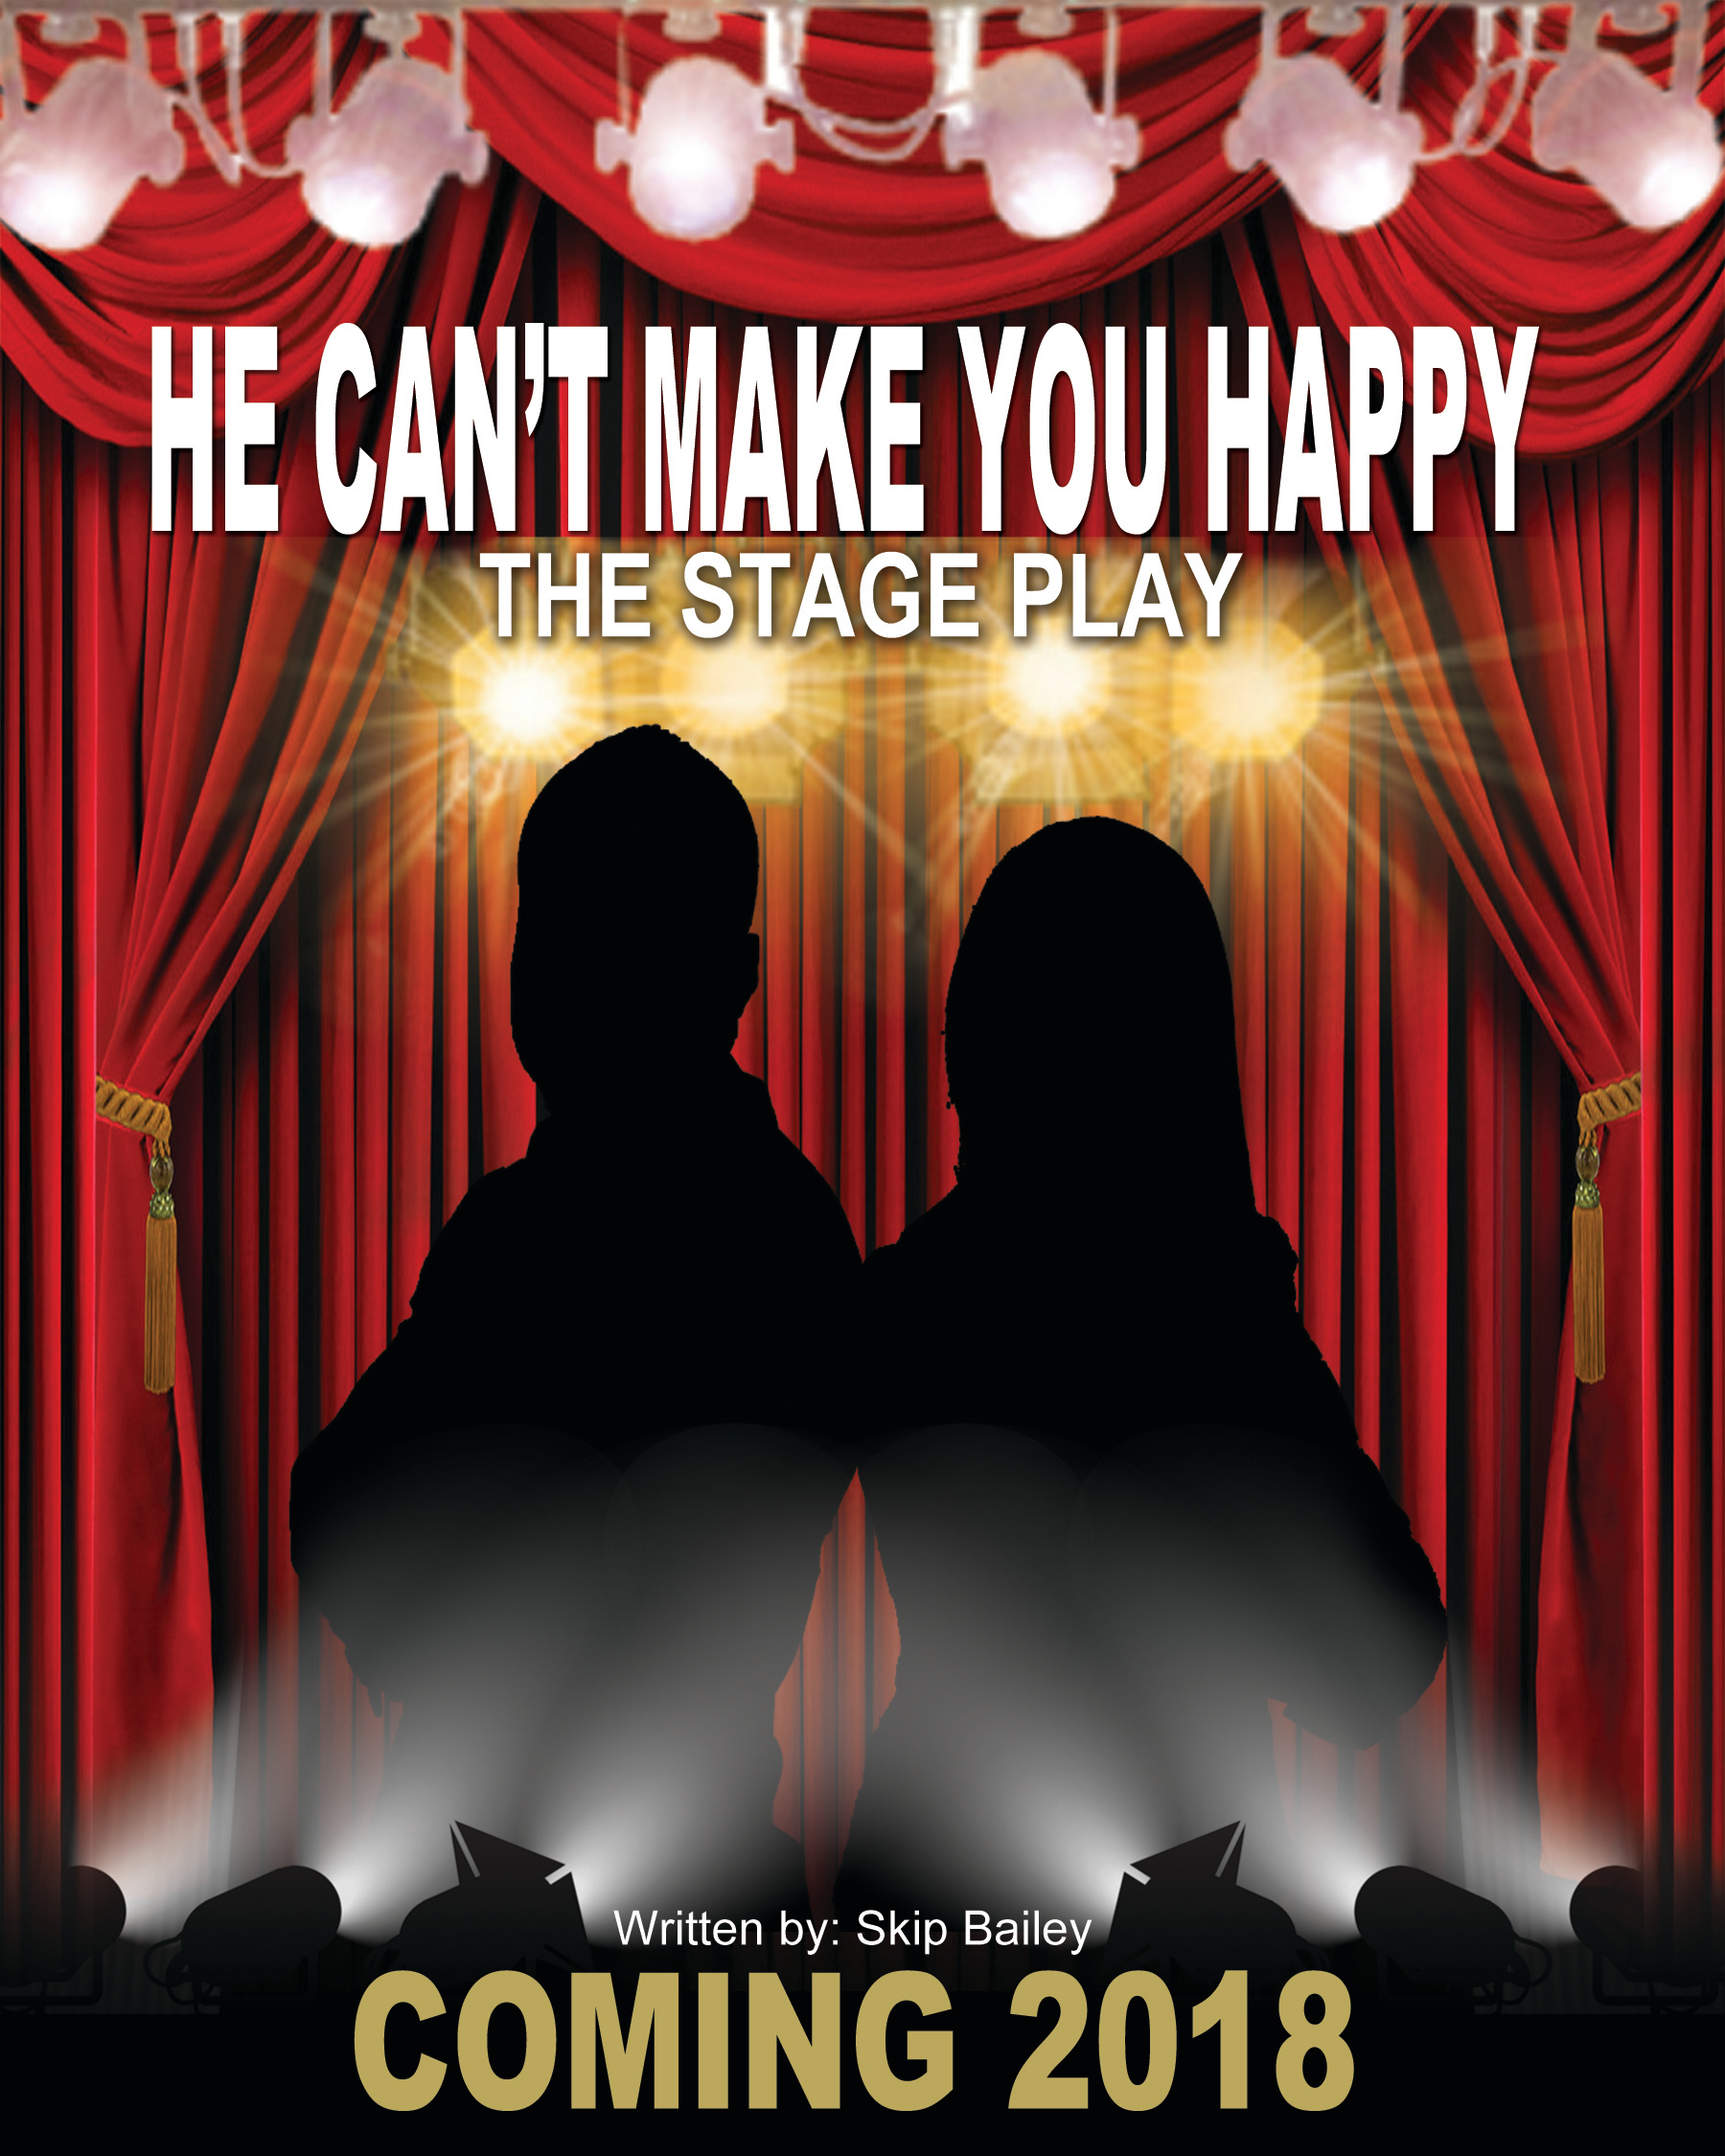 SKIP STAGEPLAY POSTER PROOF